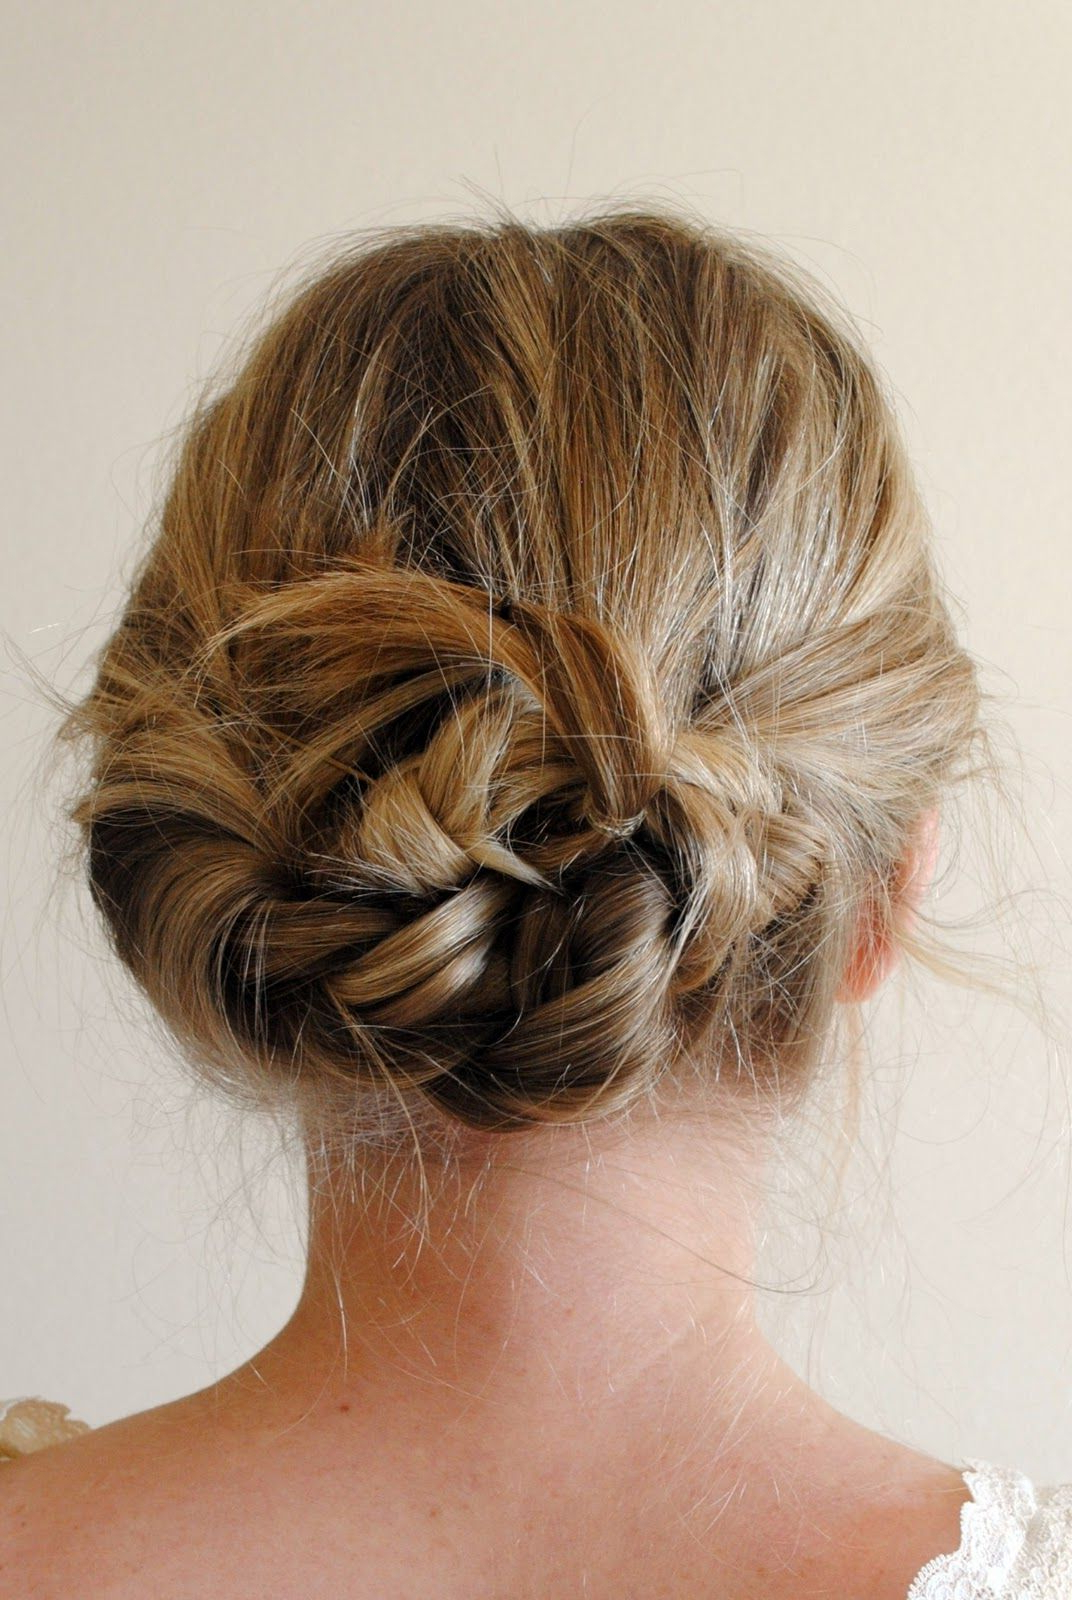 Famous Loosely Tied Braid Hairstyles With A Ribbon Inside This Is Pretty, And So Easy! Braid Hair Like Putting It In (Gallery 3 of 20)